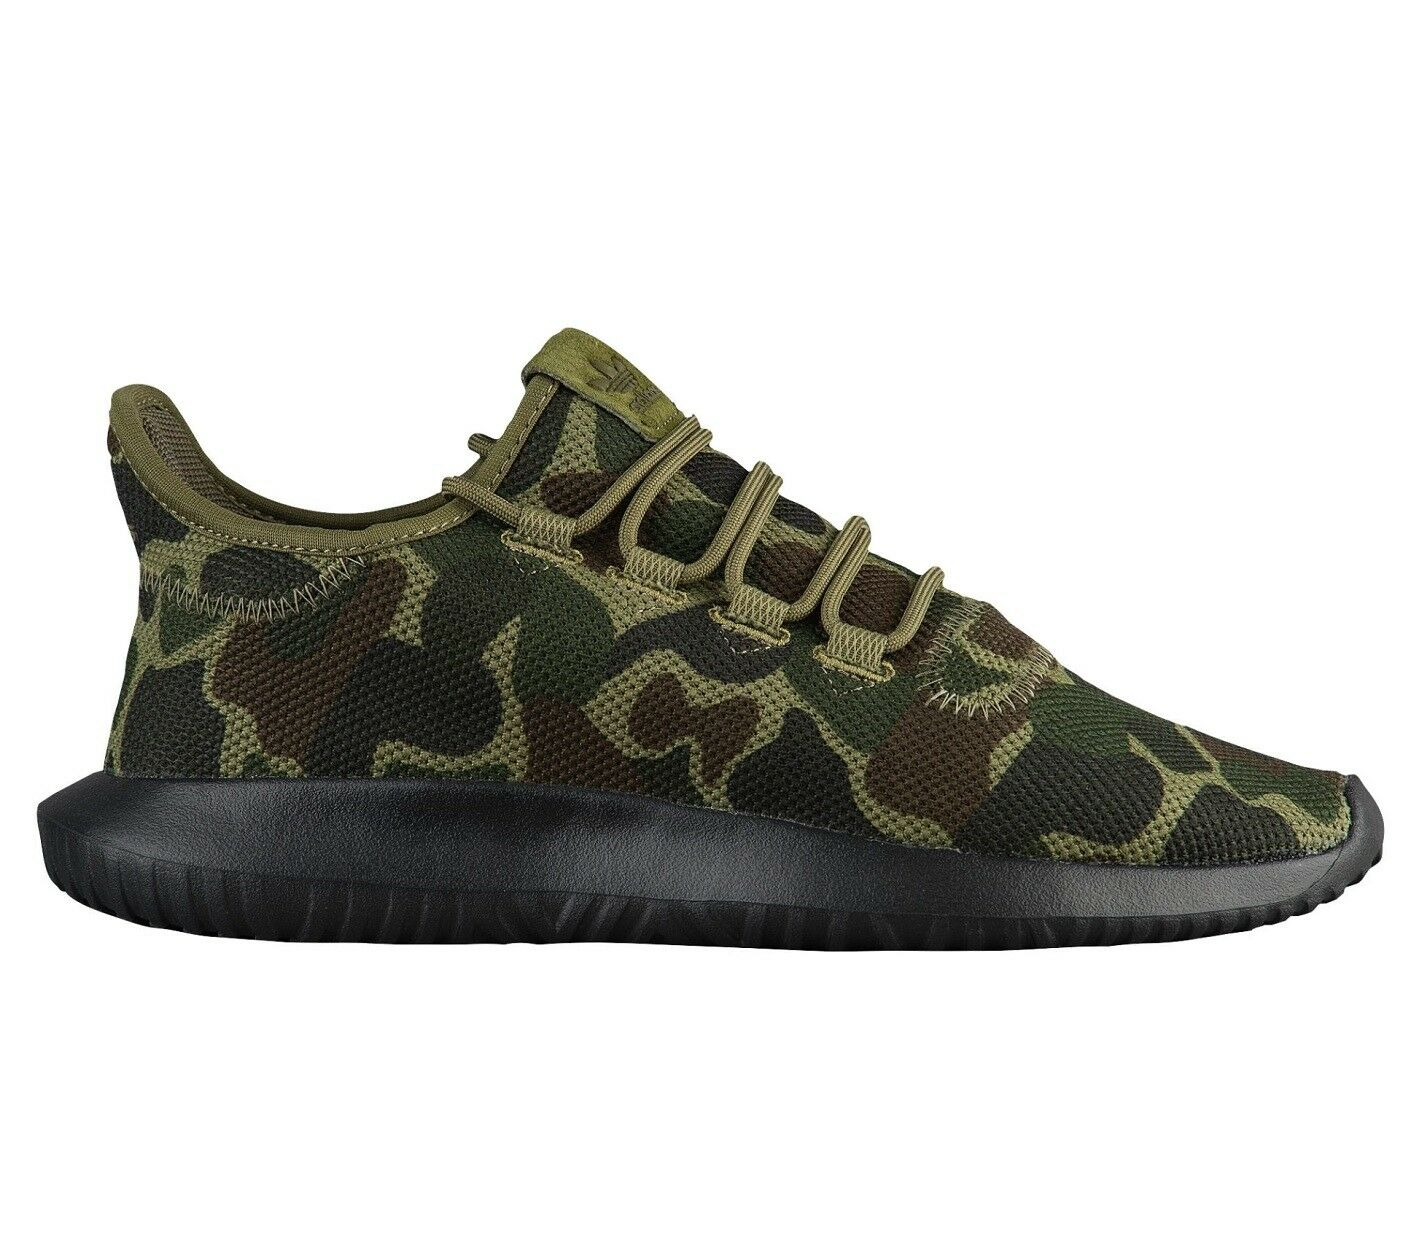 Adidas Tubular Shadow Knit Camo Mens CP8682 Night Cargo Black Shoes Size 12